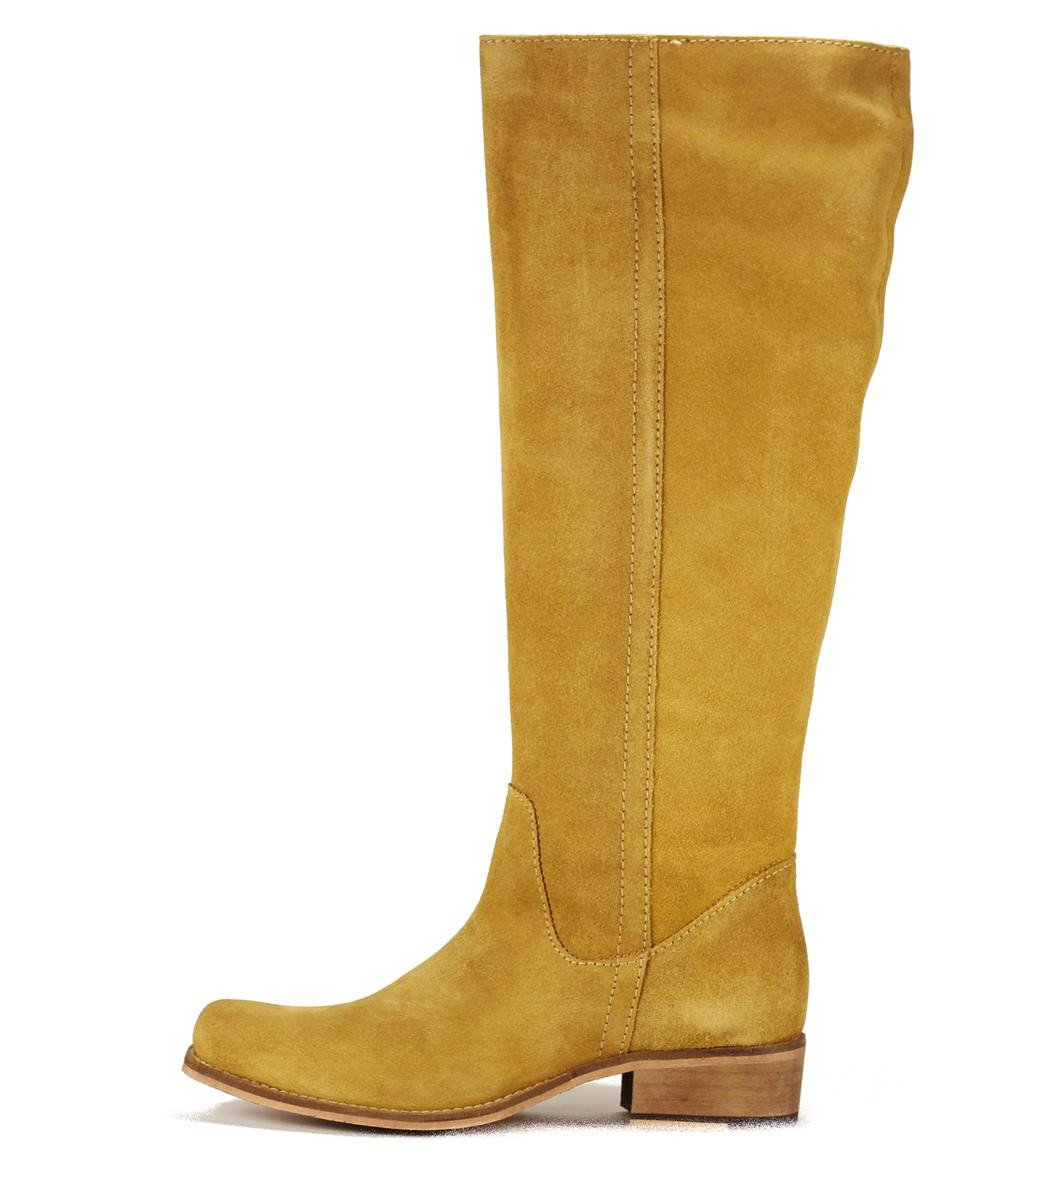 Seychelles for Women: Secretive Tan Tall Boot